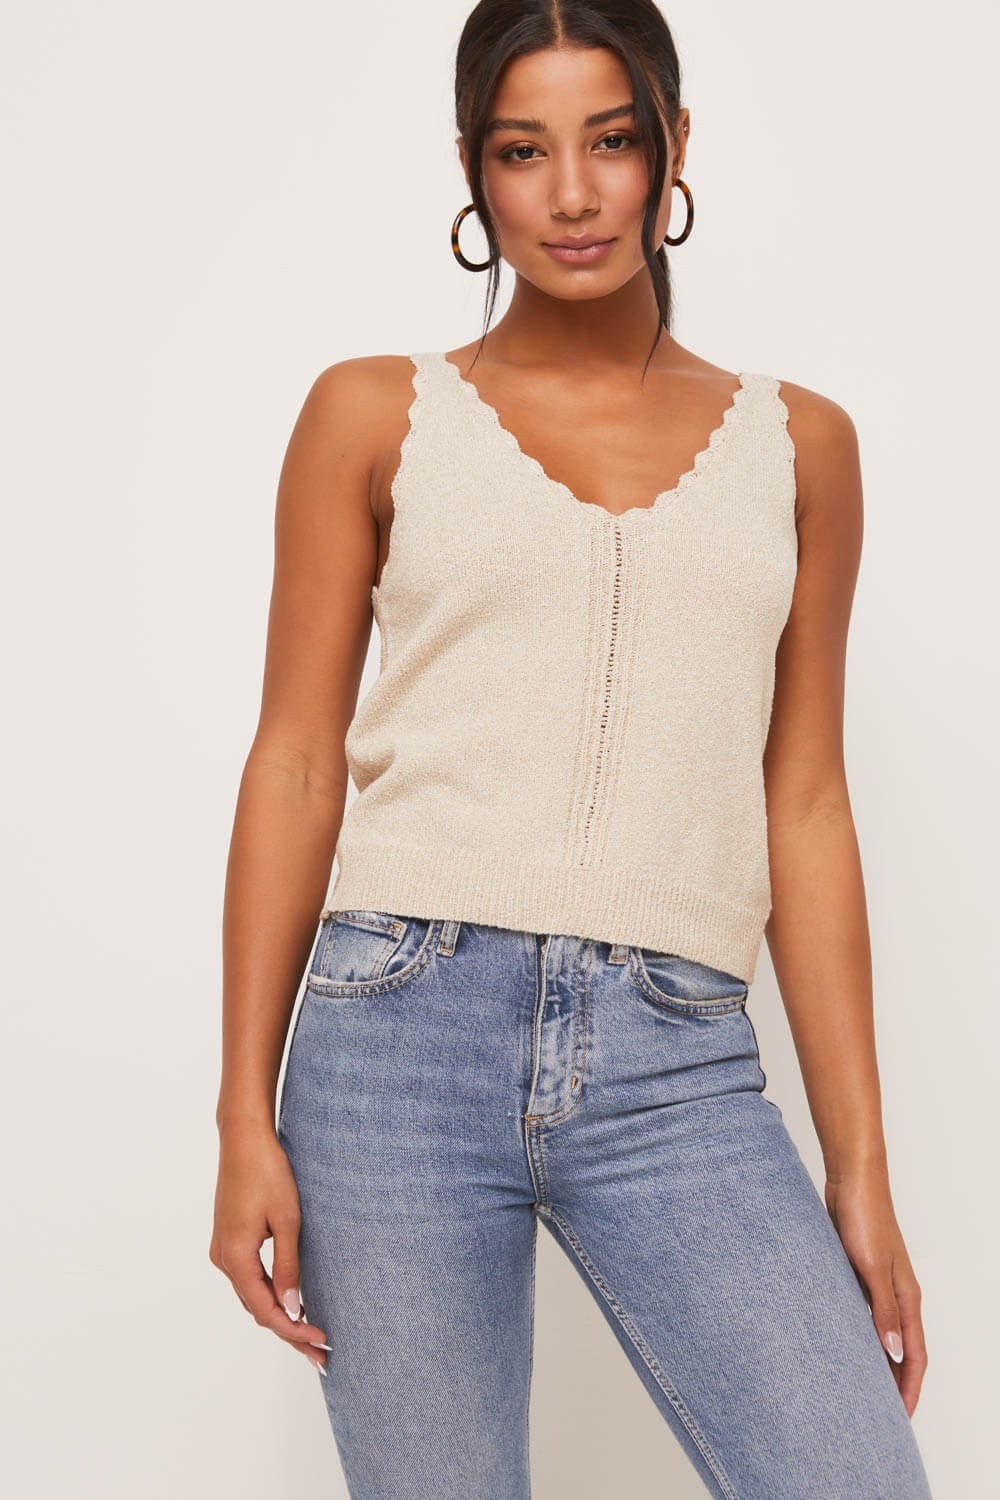 LT15731-CI Scalloped Edge Knit Tank- Taupe - Bleu Chic Boutique